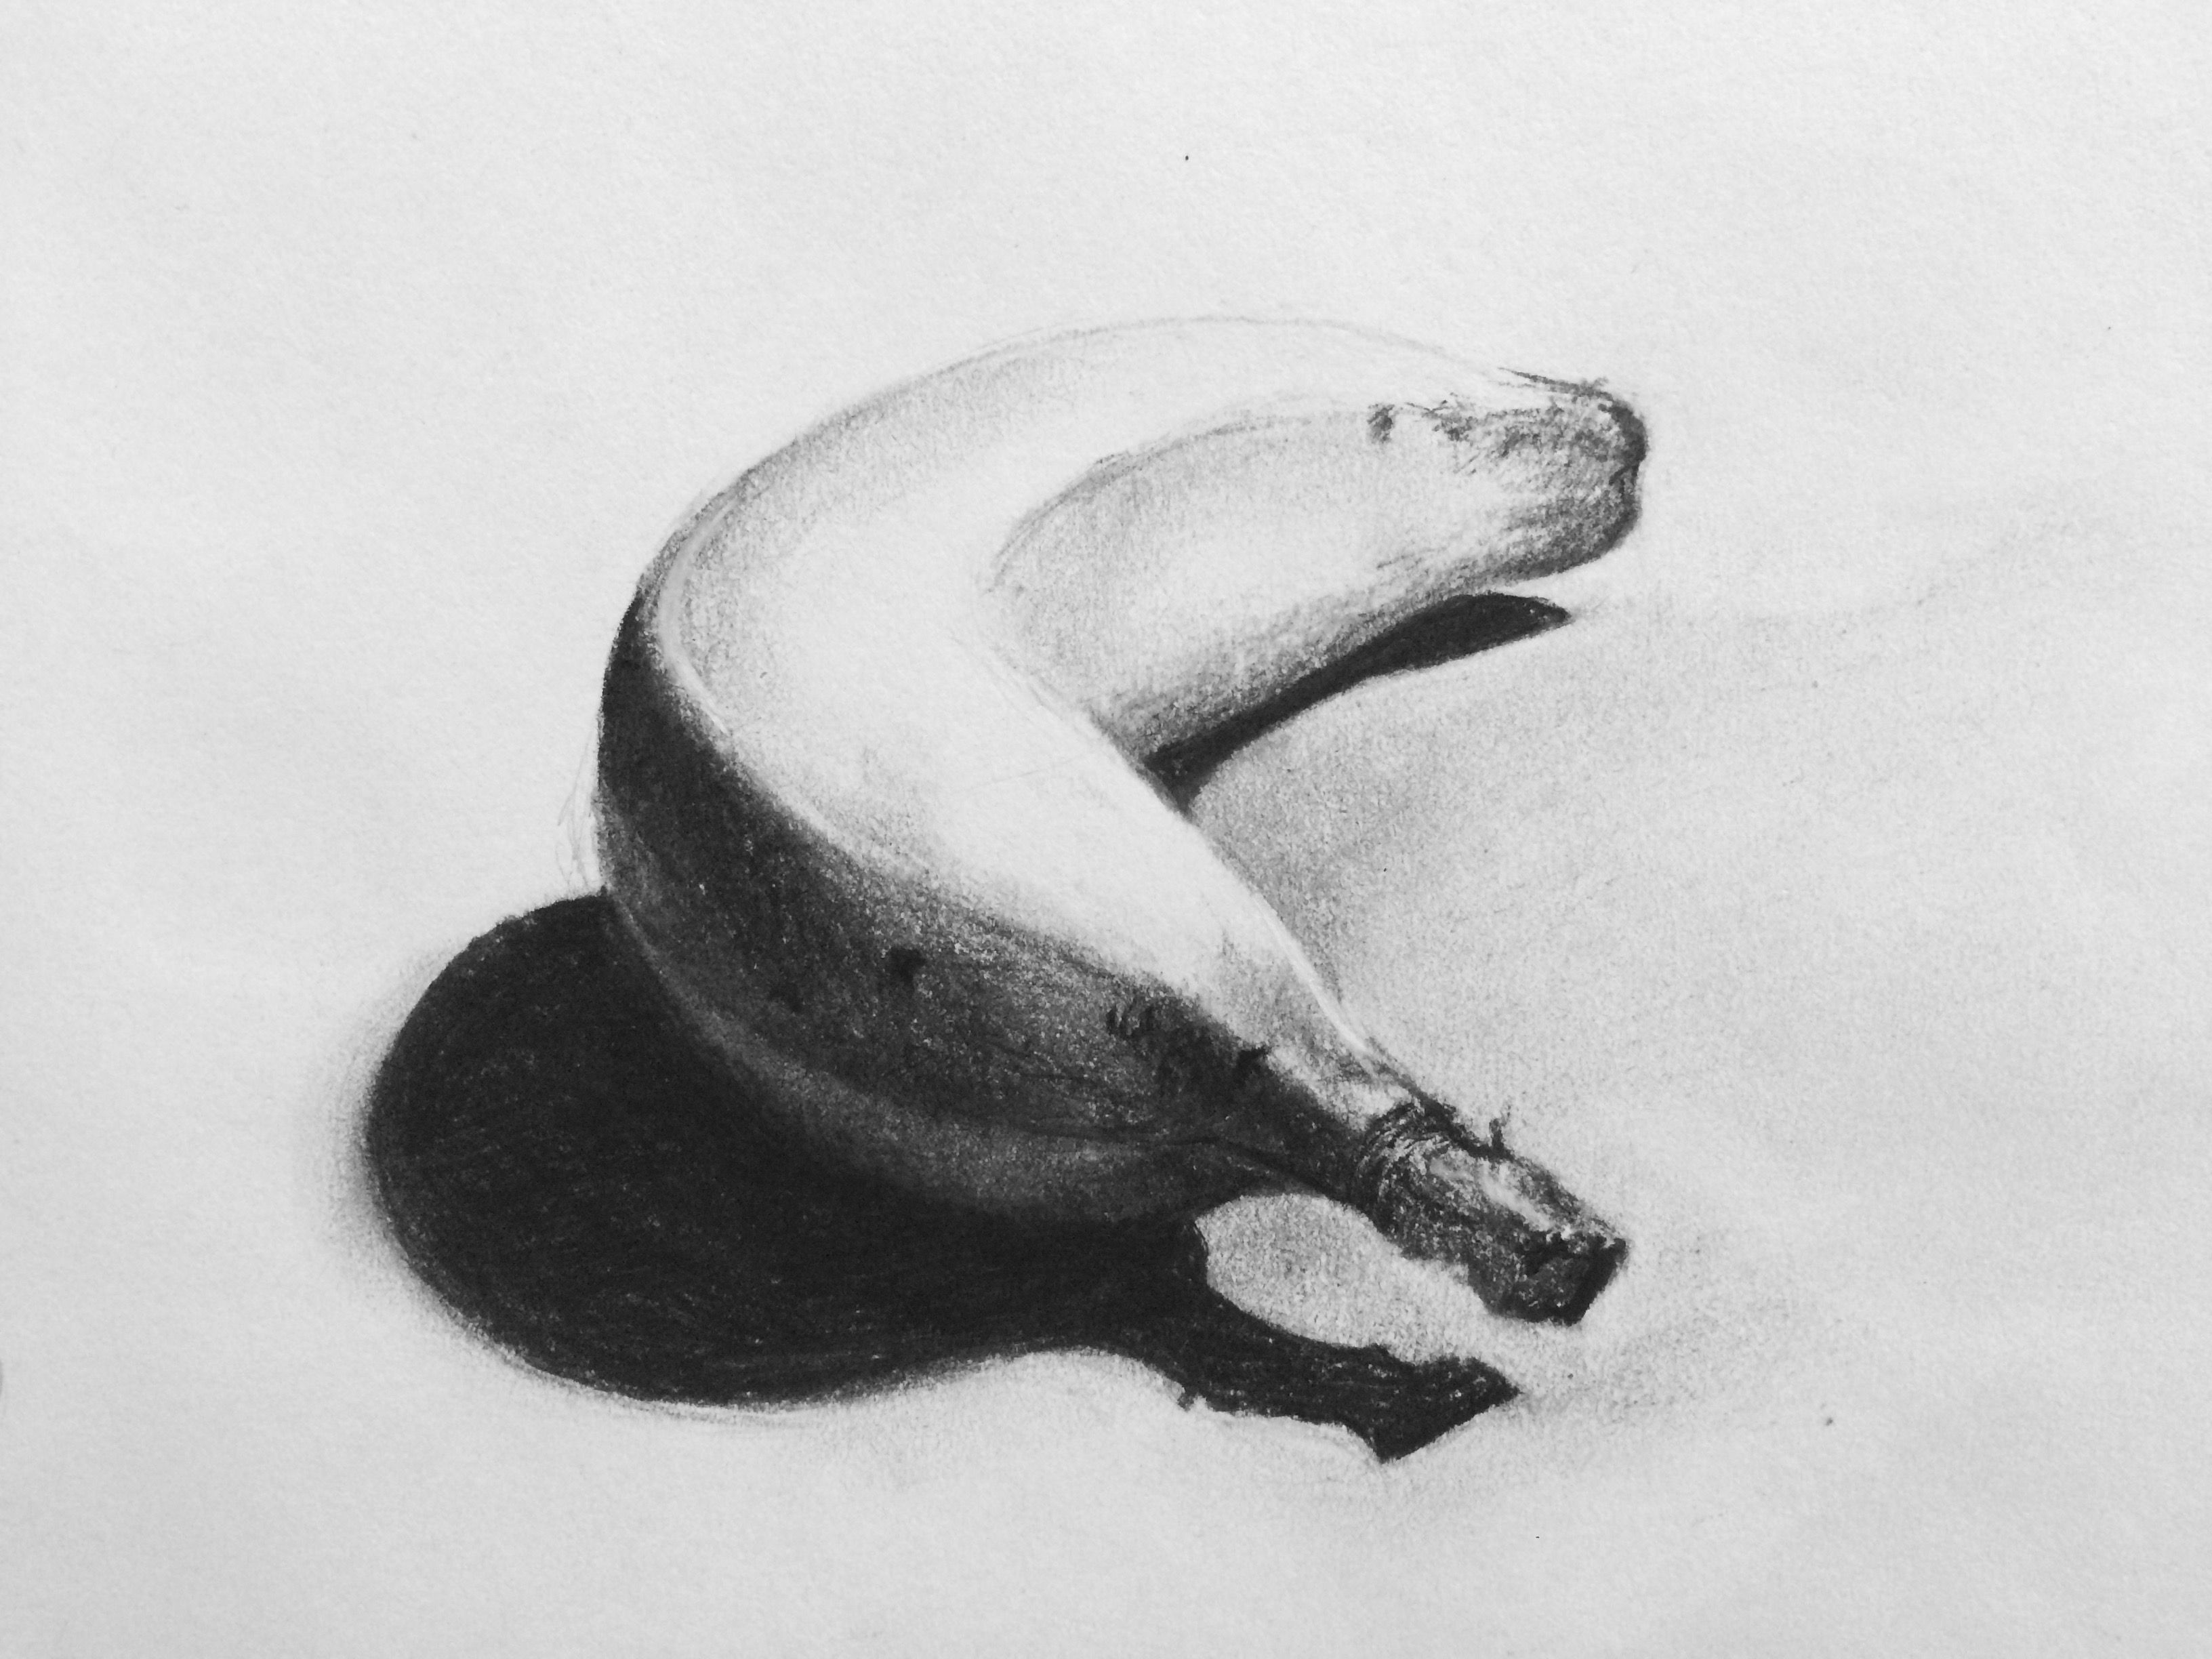 this banana study was completed in charcoal as part of drawing